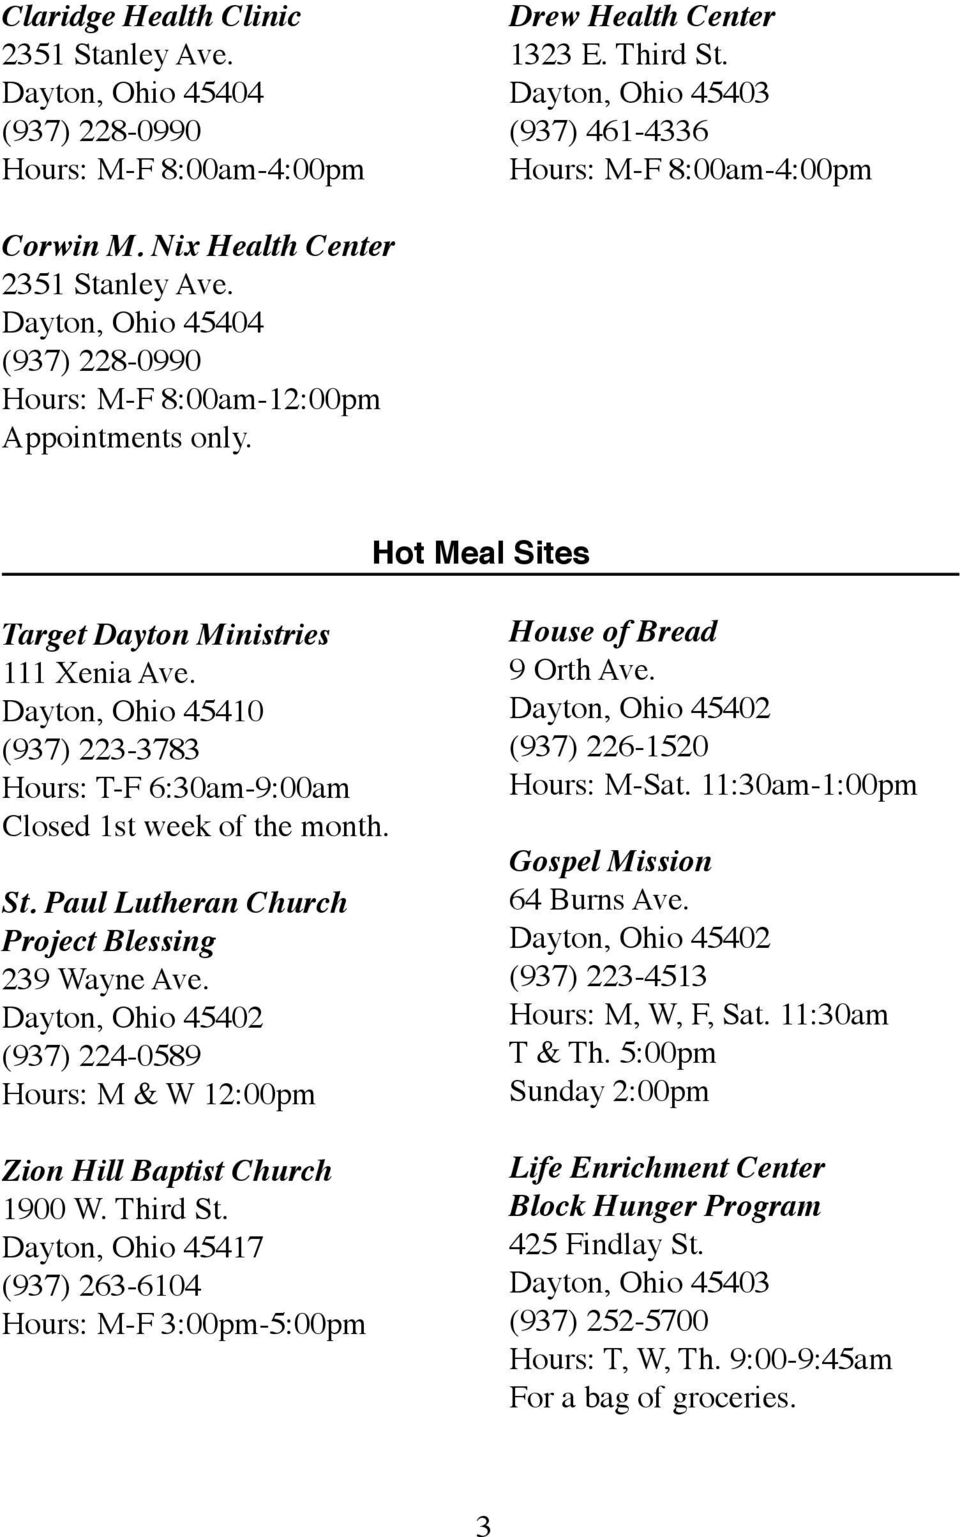 223-3783 Hours:.T-F.6:30am-9:00am Closed.1st.week.of.the.month. St. Paul Lutheran Church Project Blessing 239.Wayne.Ave. (937).224-0589 Hours:.M.&.W.12:00pm Zion Hill Baptist Church 1900.W..Third.St. Dayton,.